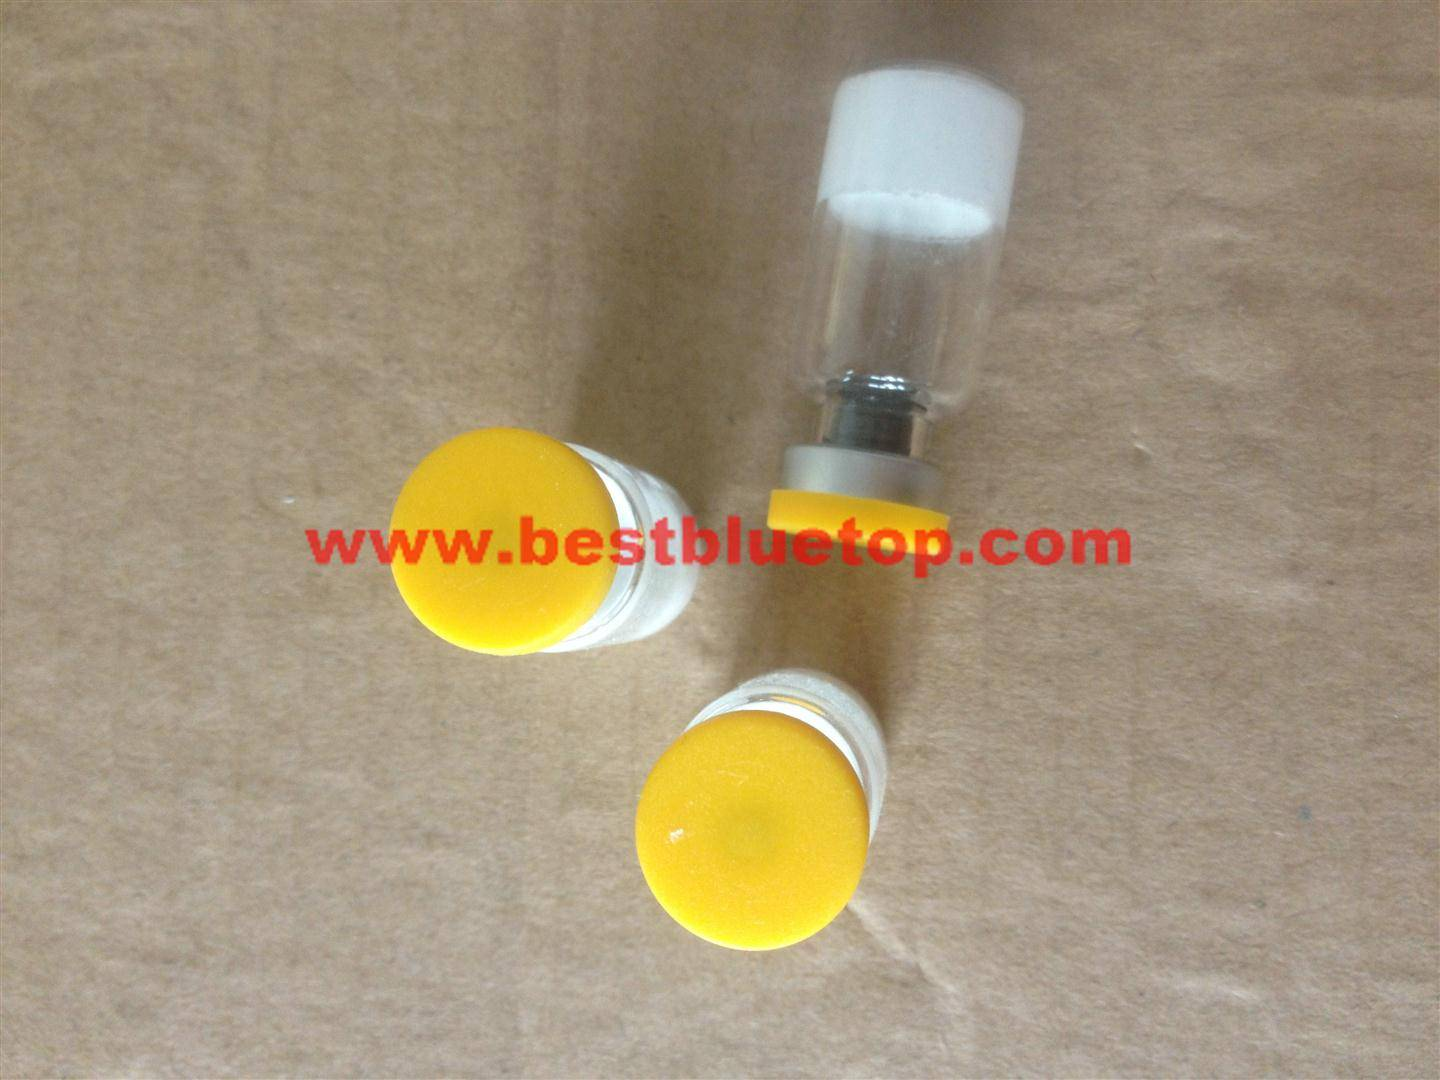 191 Amino Acid hgh,blood serum tested 30-35,blue top,yellow top,red top,gray top hgh